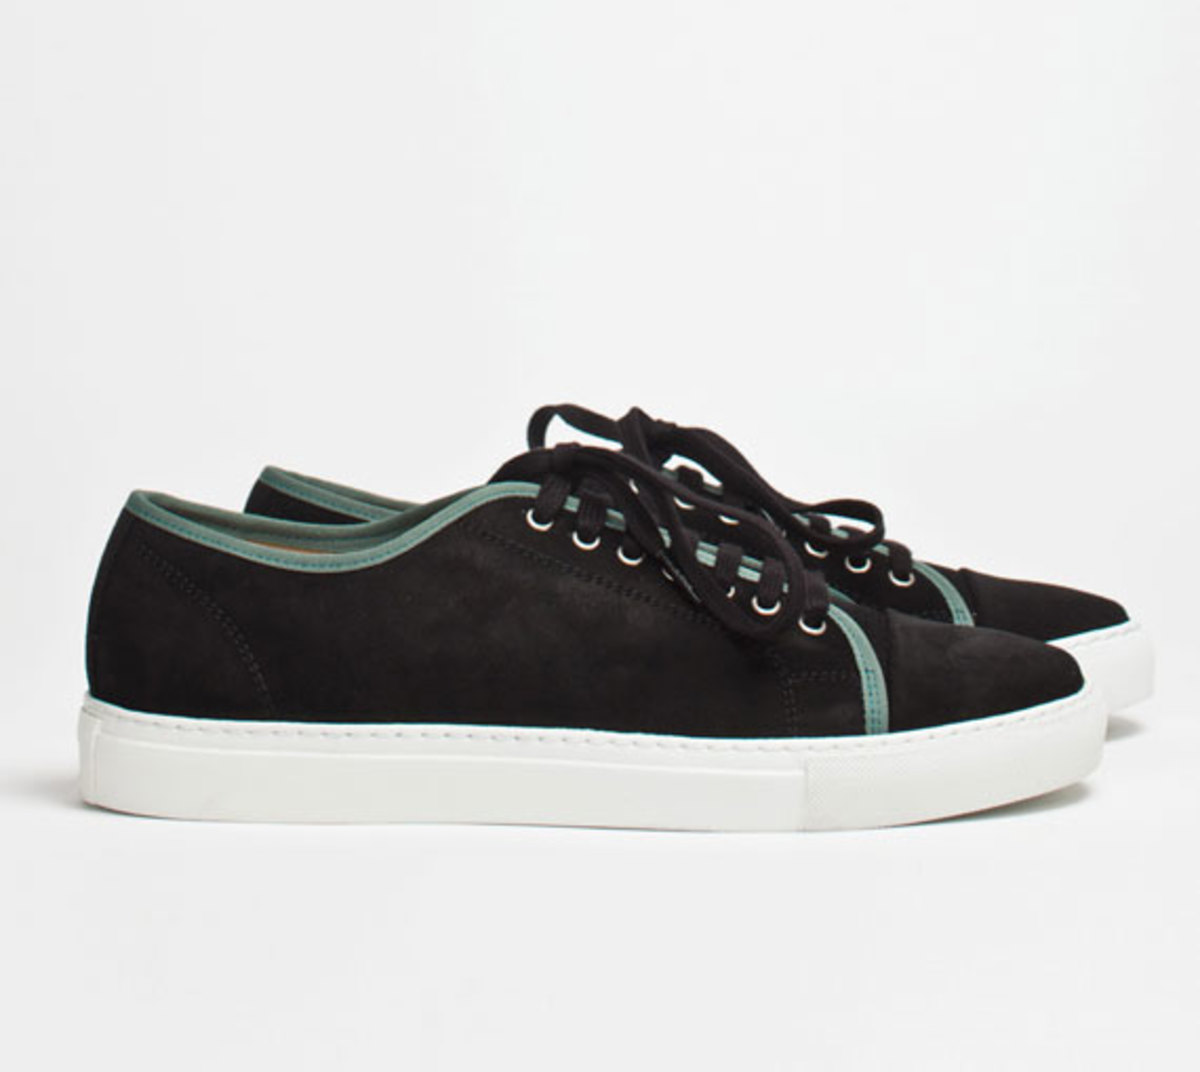 comme-des-garcons-shirt-the-generic-man-fall-2012-footwear-collection-09